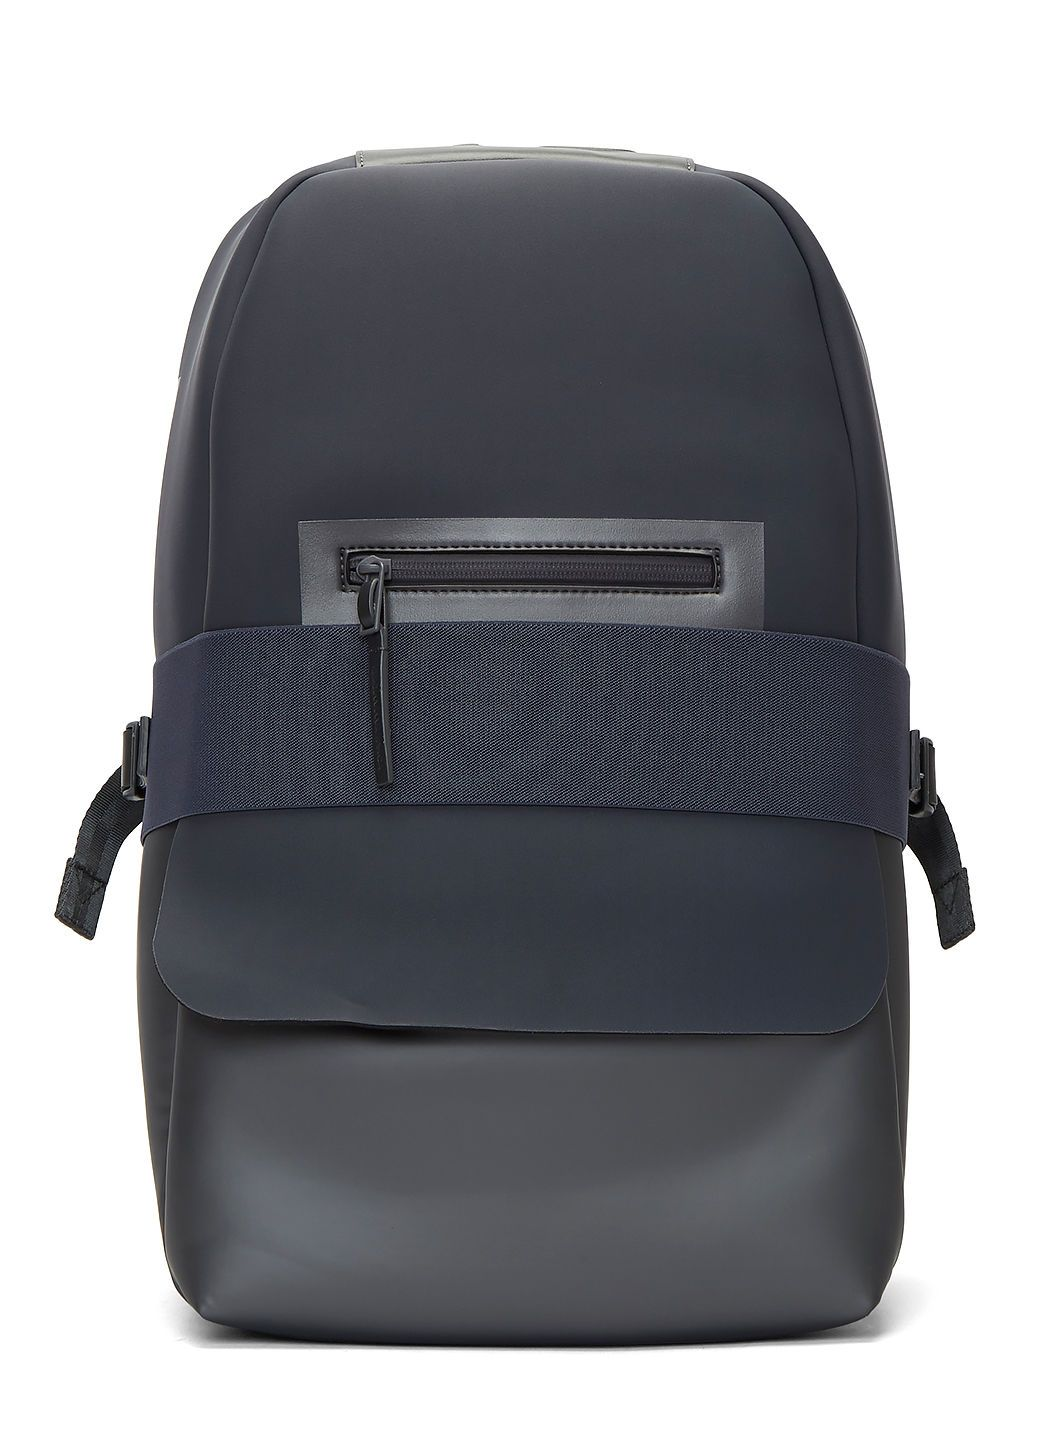 d214cb76215 Y-3 Men s Qasa Backpack in Grey.  y-3  bags  leather  polyester  backpacks